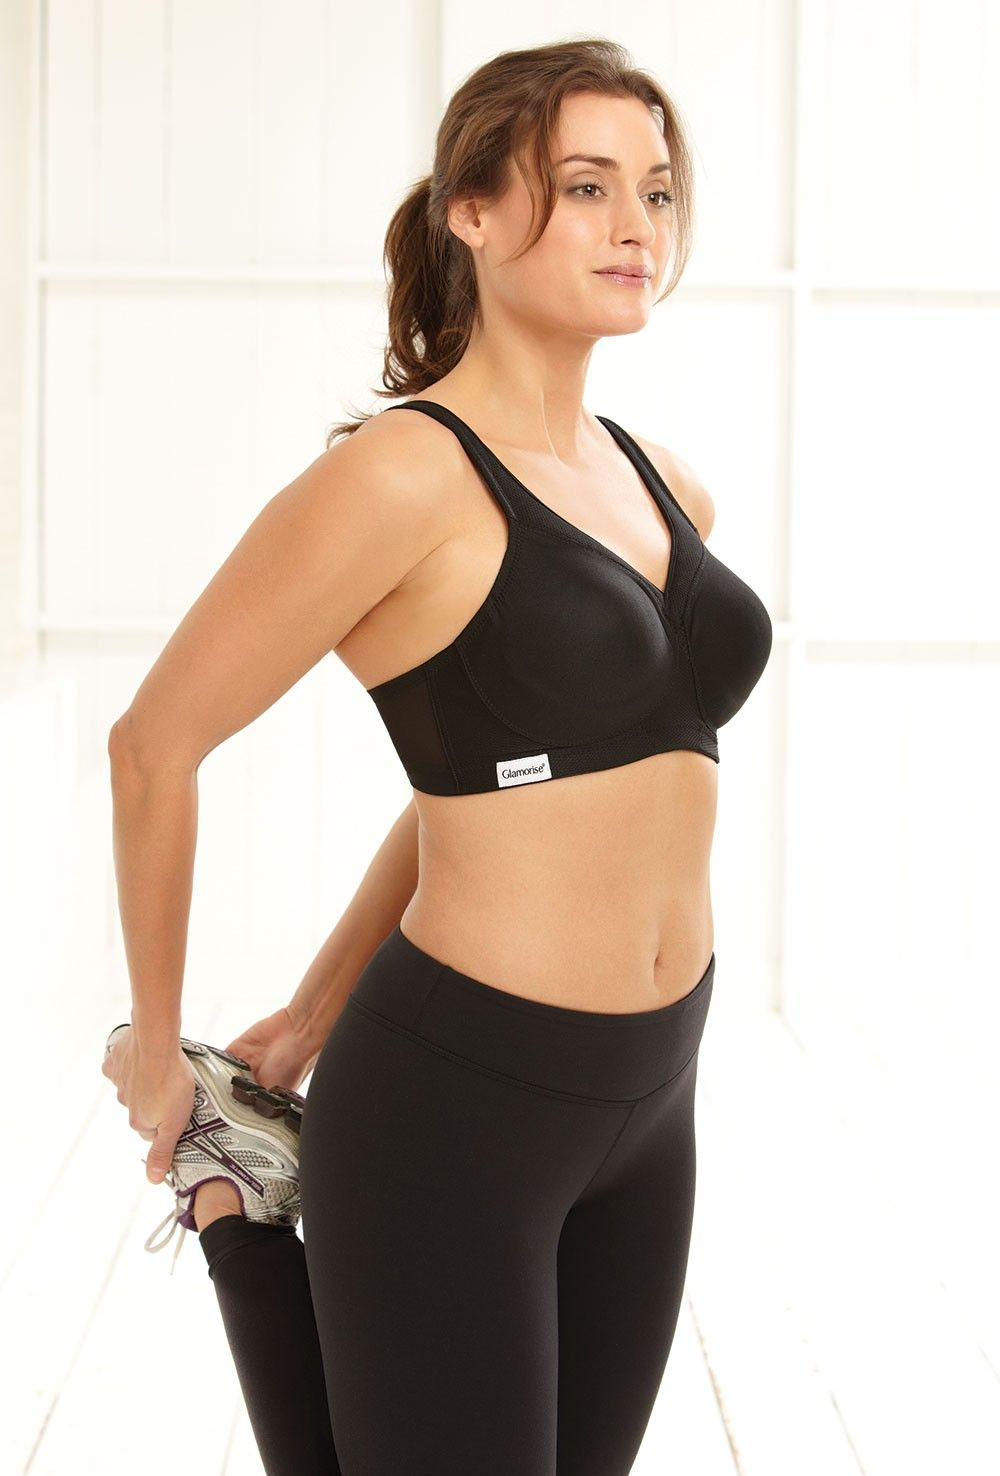 ebf5a23f8c The Ultimate Full Figure Sport Bra - All Styles